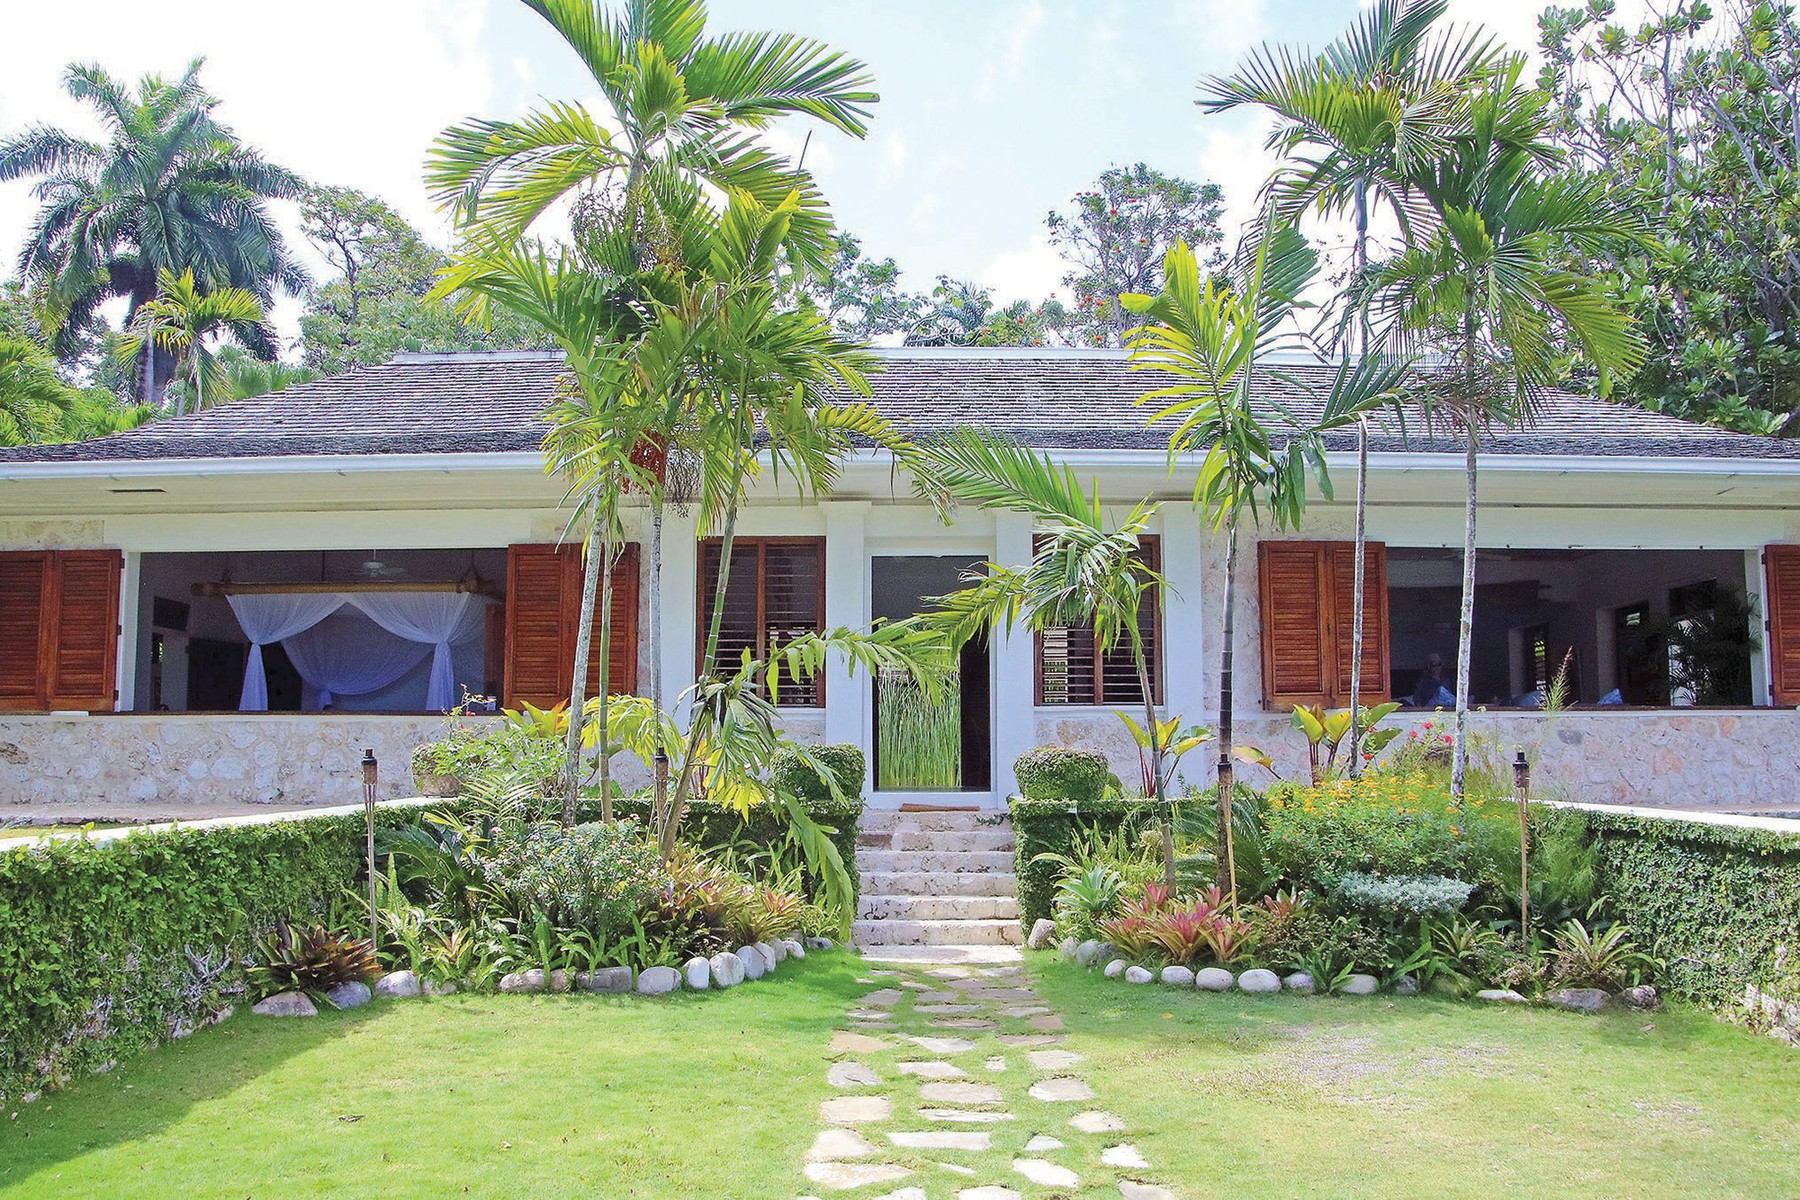 Ian Fleming's villa, where agent 007 came to life, is part of the GoldenEye resort in Jamaica.,Image: 450963790, License: Rights-managed, Restrictions: HFA WEB BL LN, Model Release: no, Credit line: Norma Meyer / Newscom / Profimedia